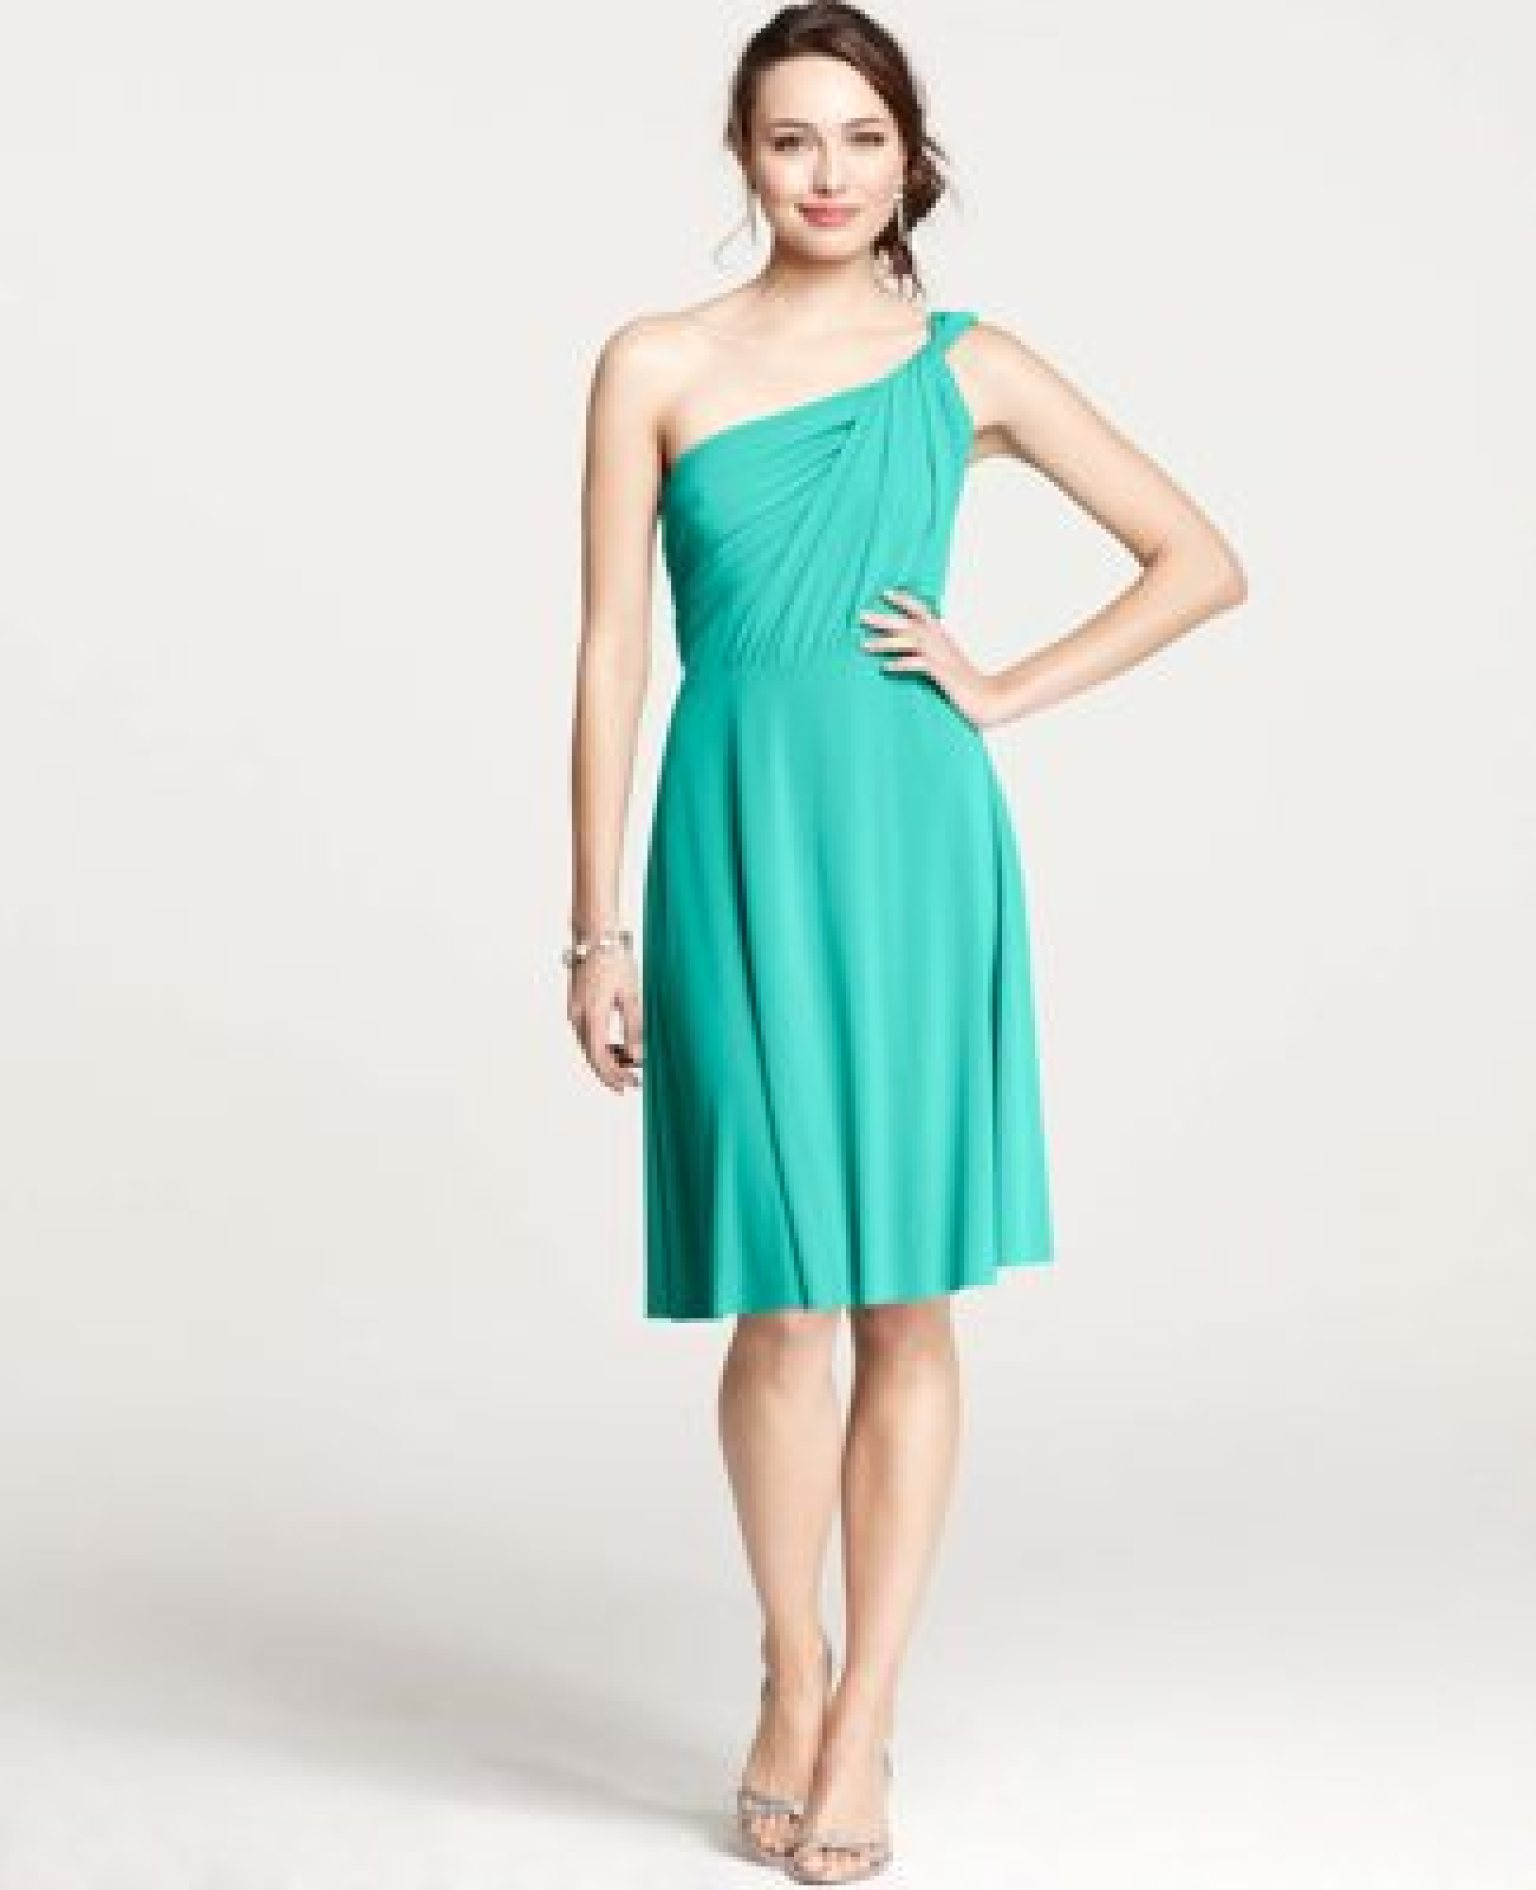 Wedding guest dresses for summer affairs photos huffpost for Best dresses for summer wedding